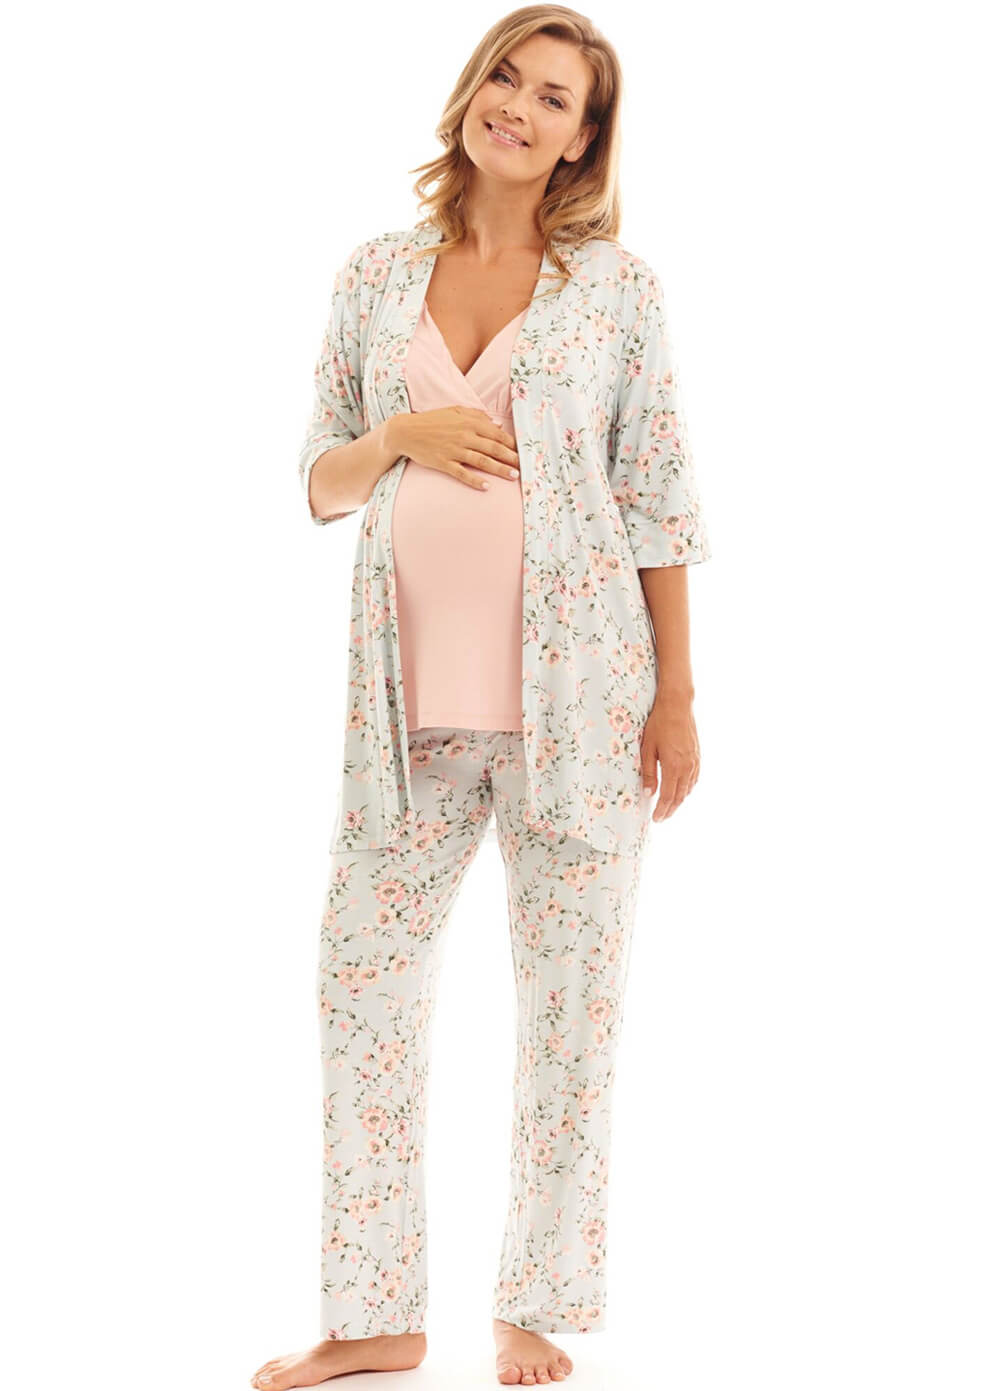 Analise Mommy & Me Maternity PJ Gift Set in Cloud Blue by Everly Grey